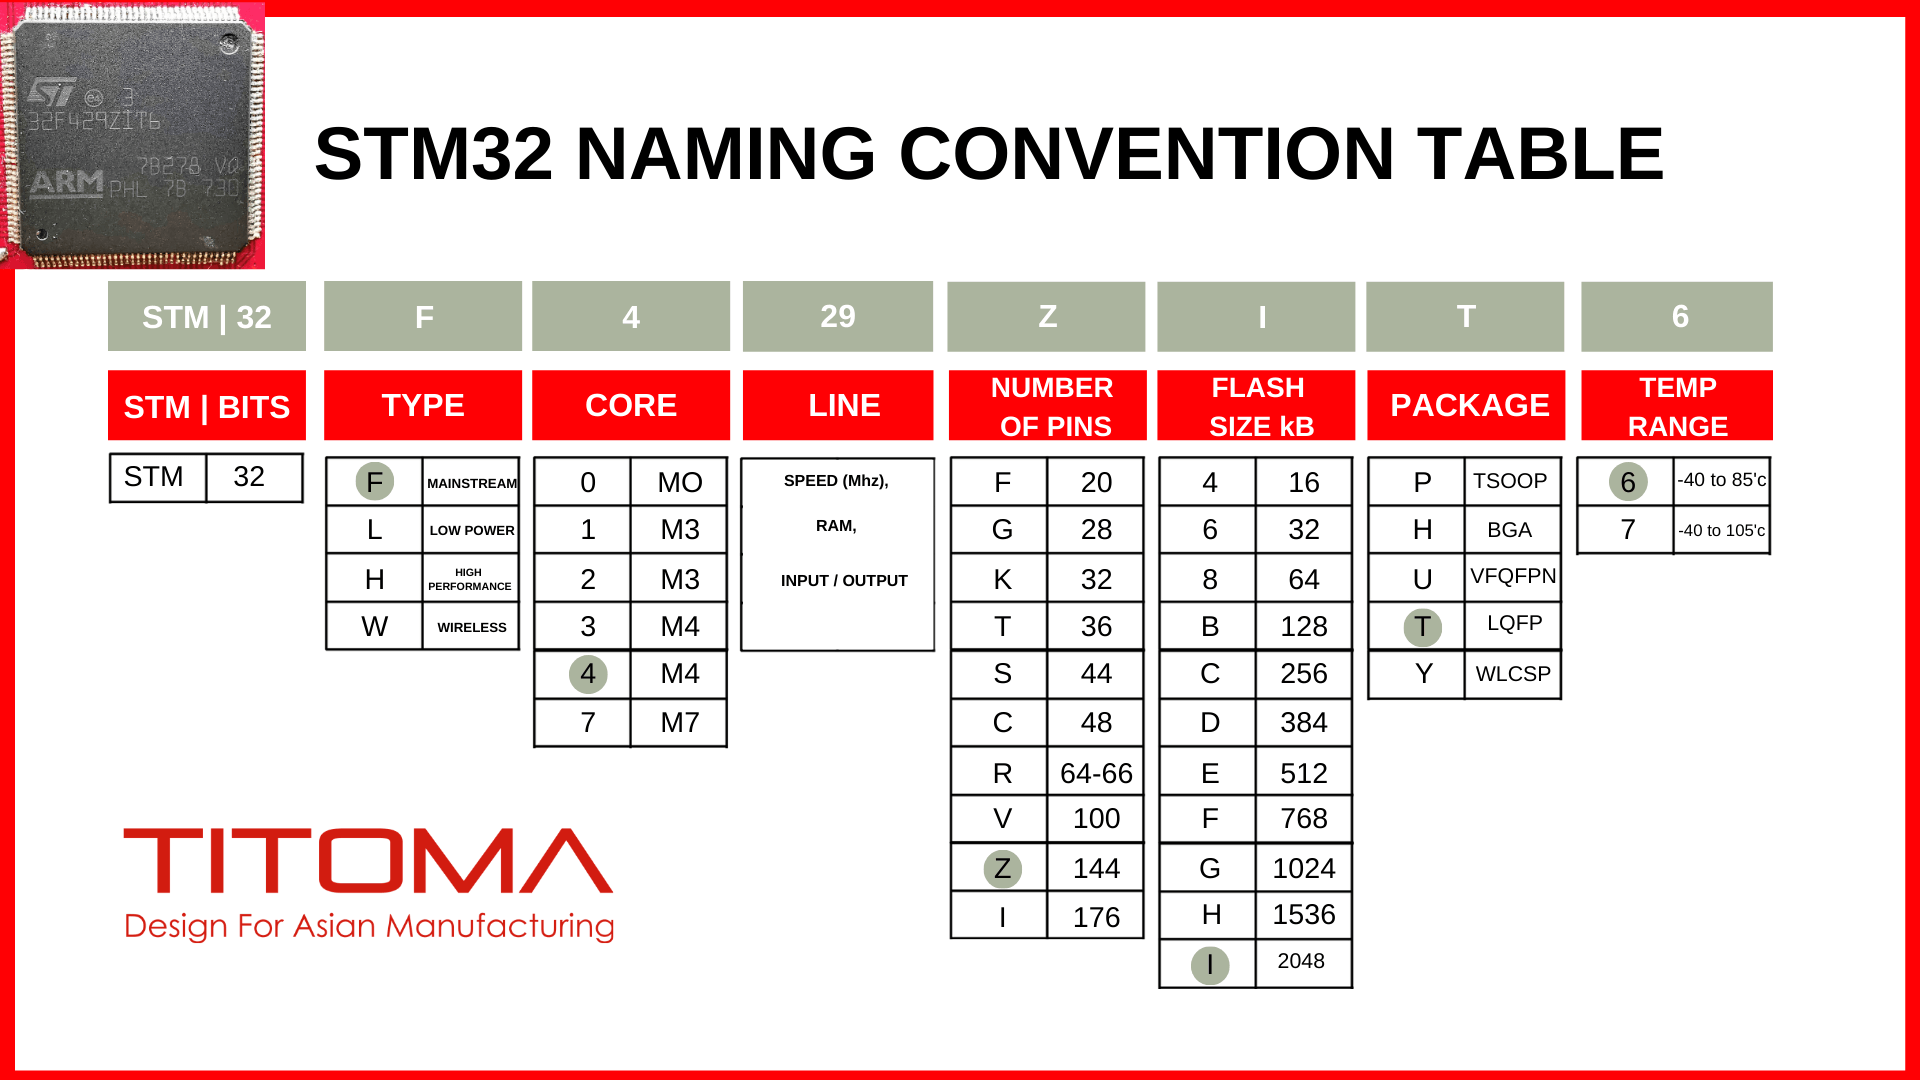 STM32 numbers meaning table